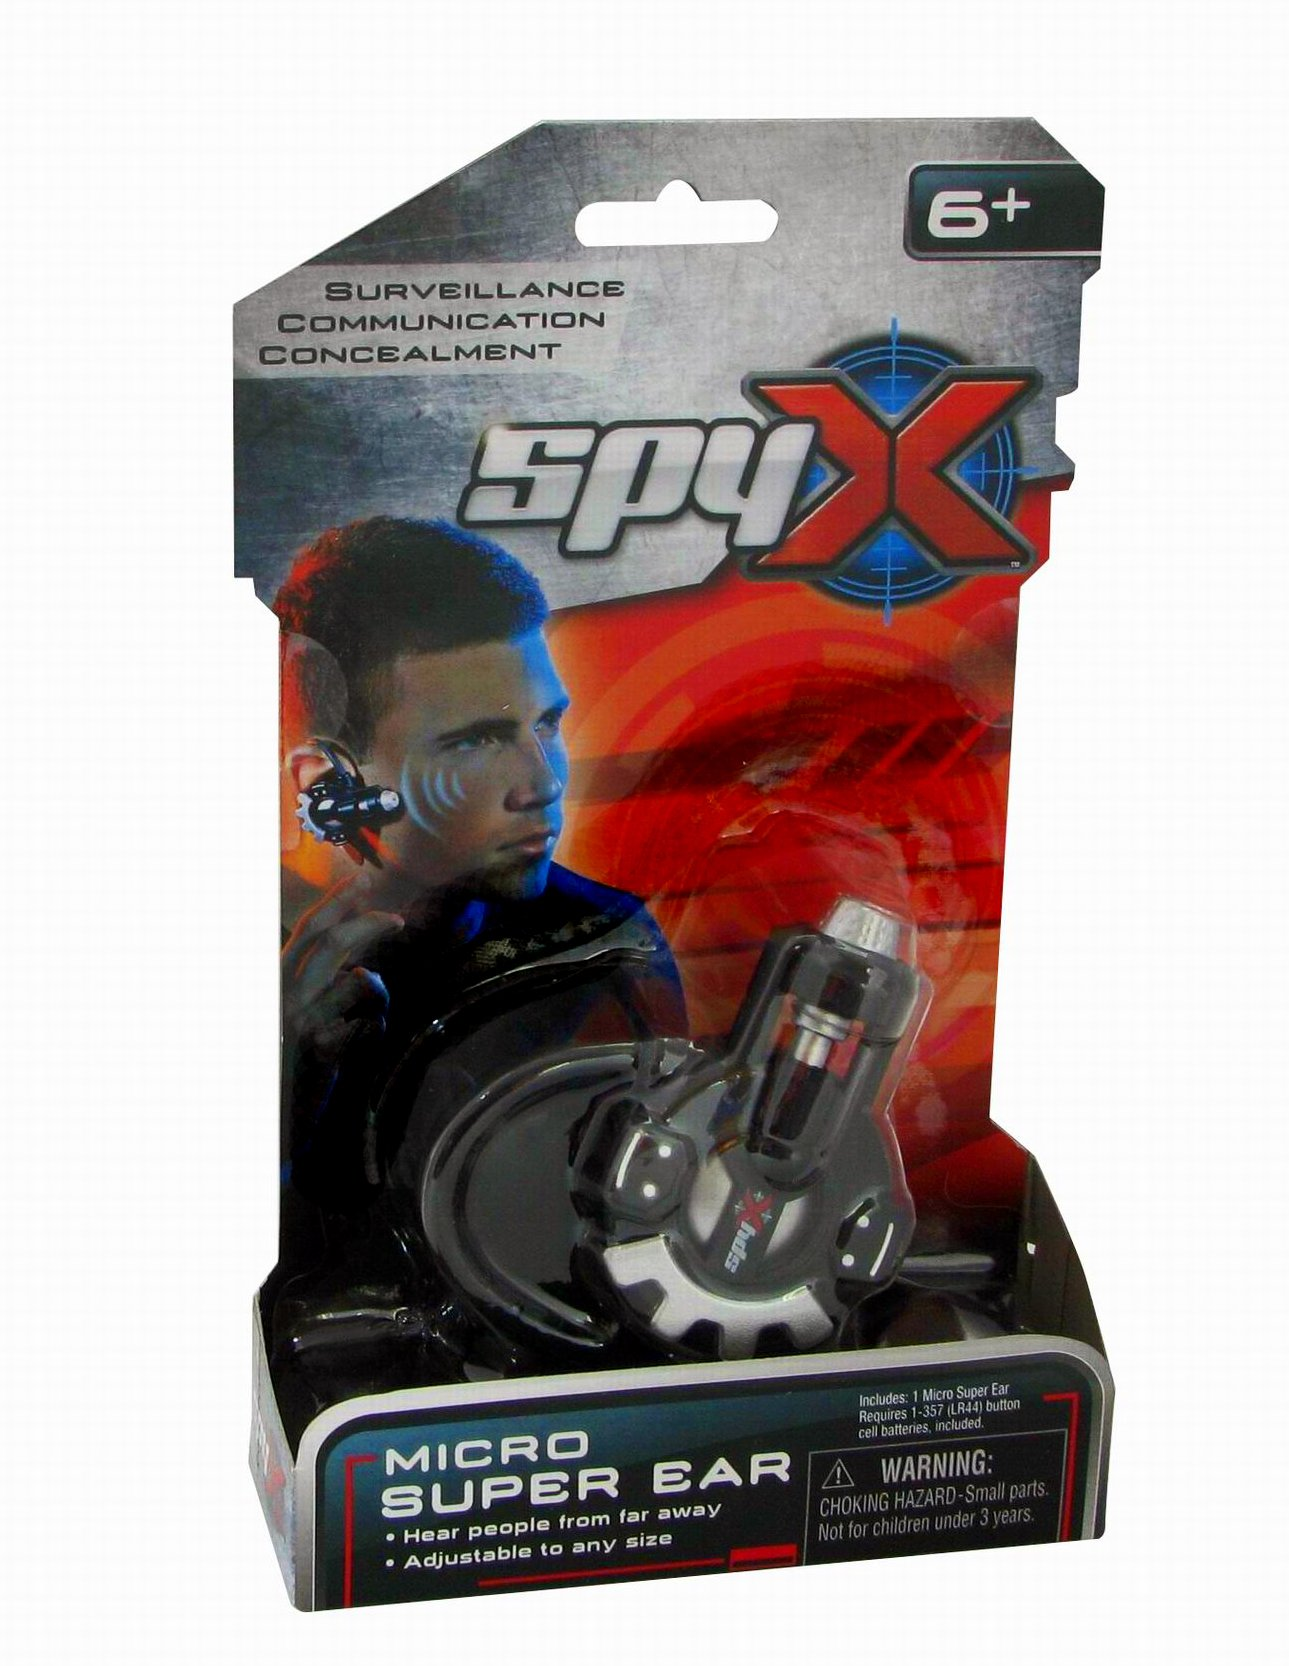 SpyX / Micro Super Ear - Spy Toy Listening Device with Over-the-Ear Design. A Perfect hands free addition for your spy gear collection! by SpyX (Image #6)